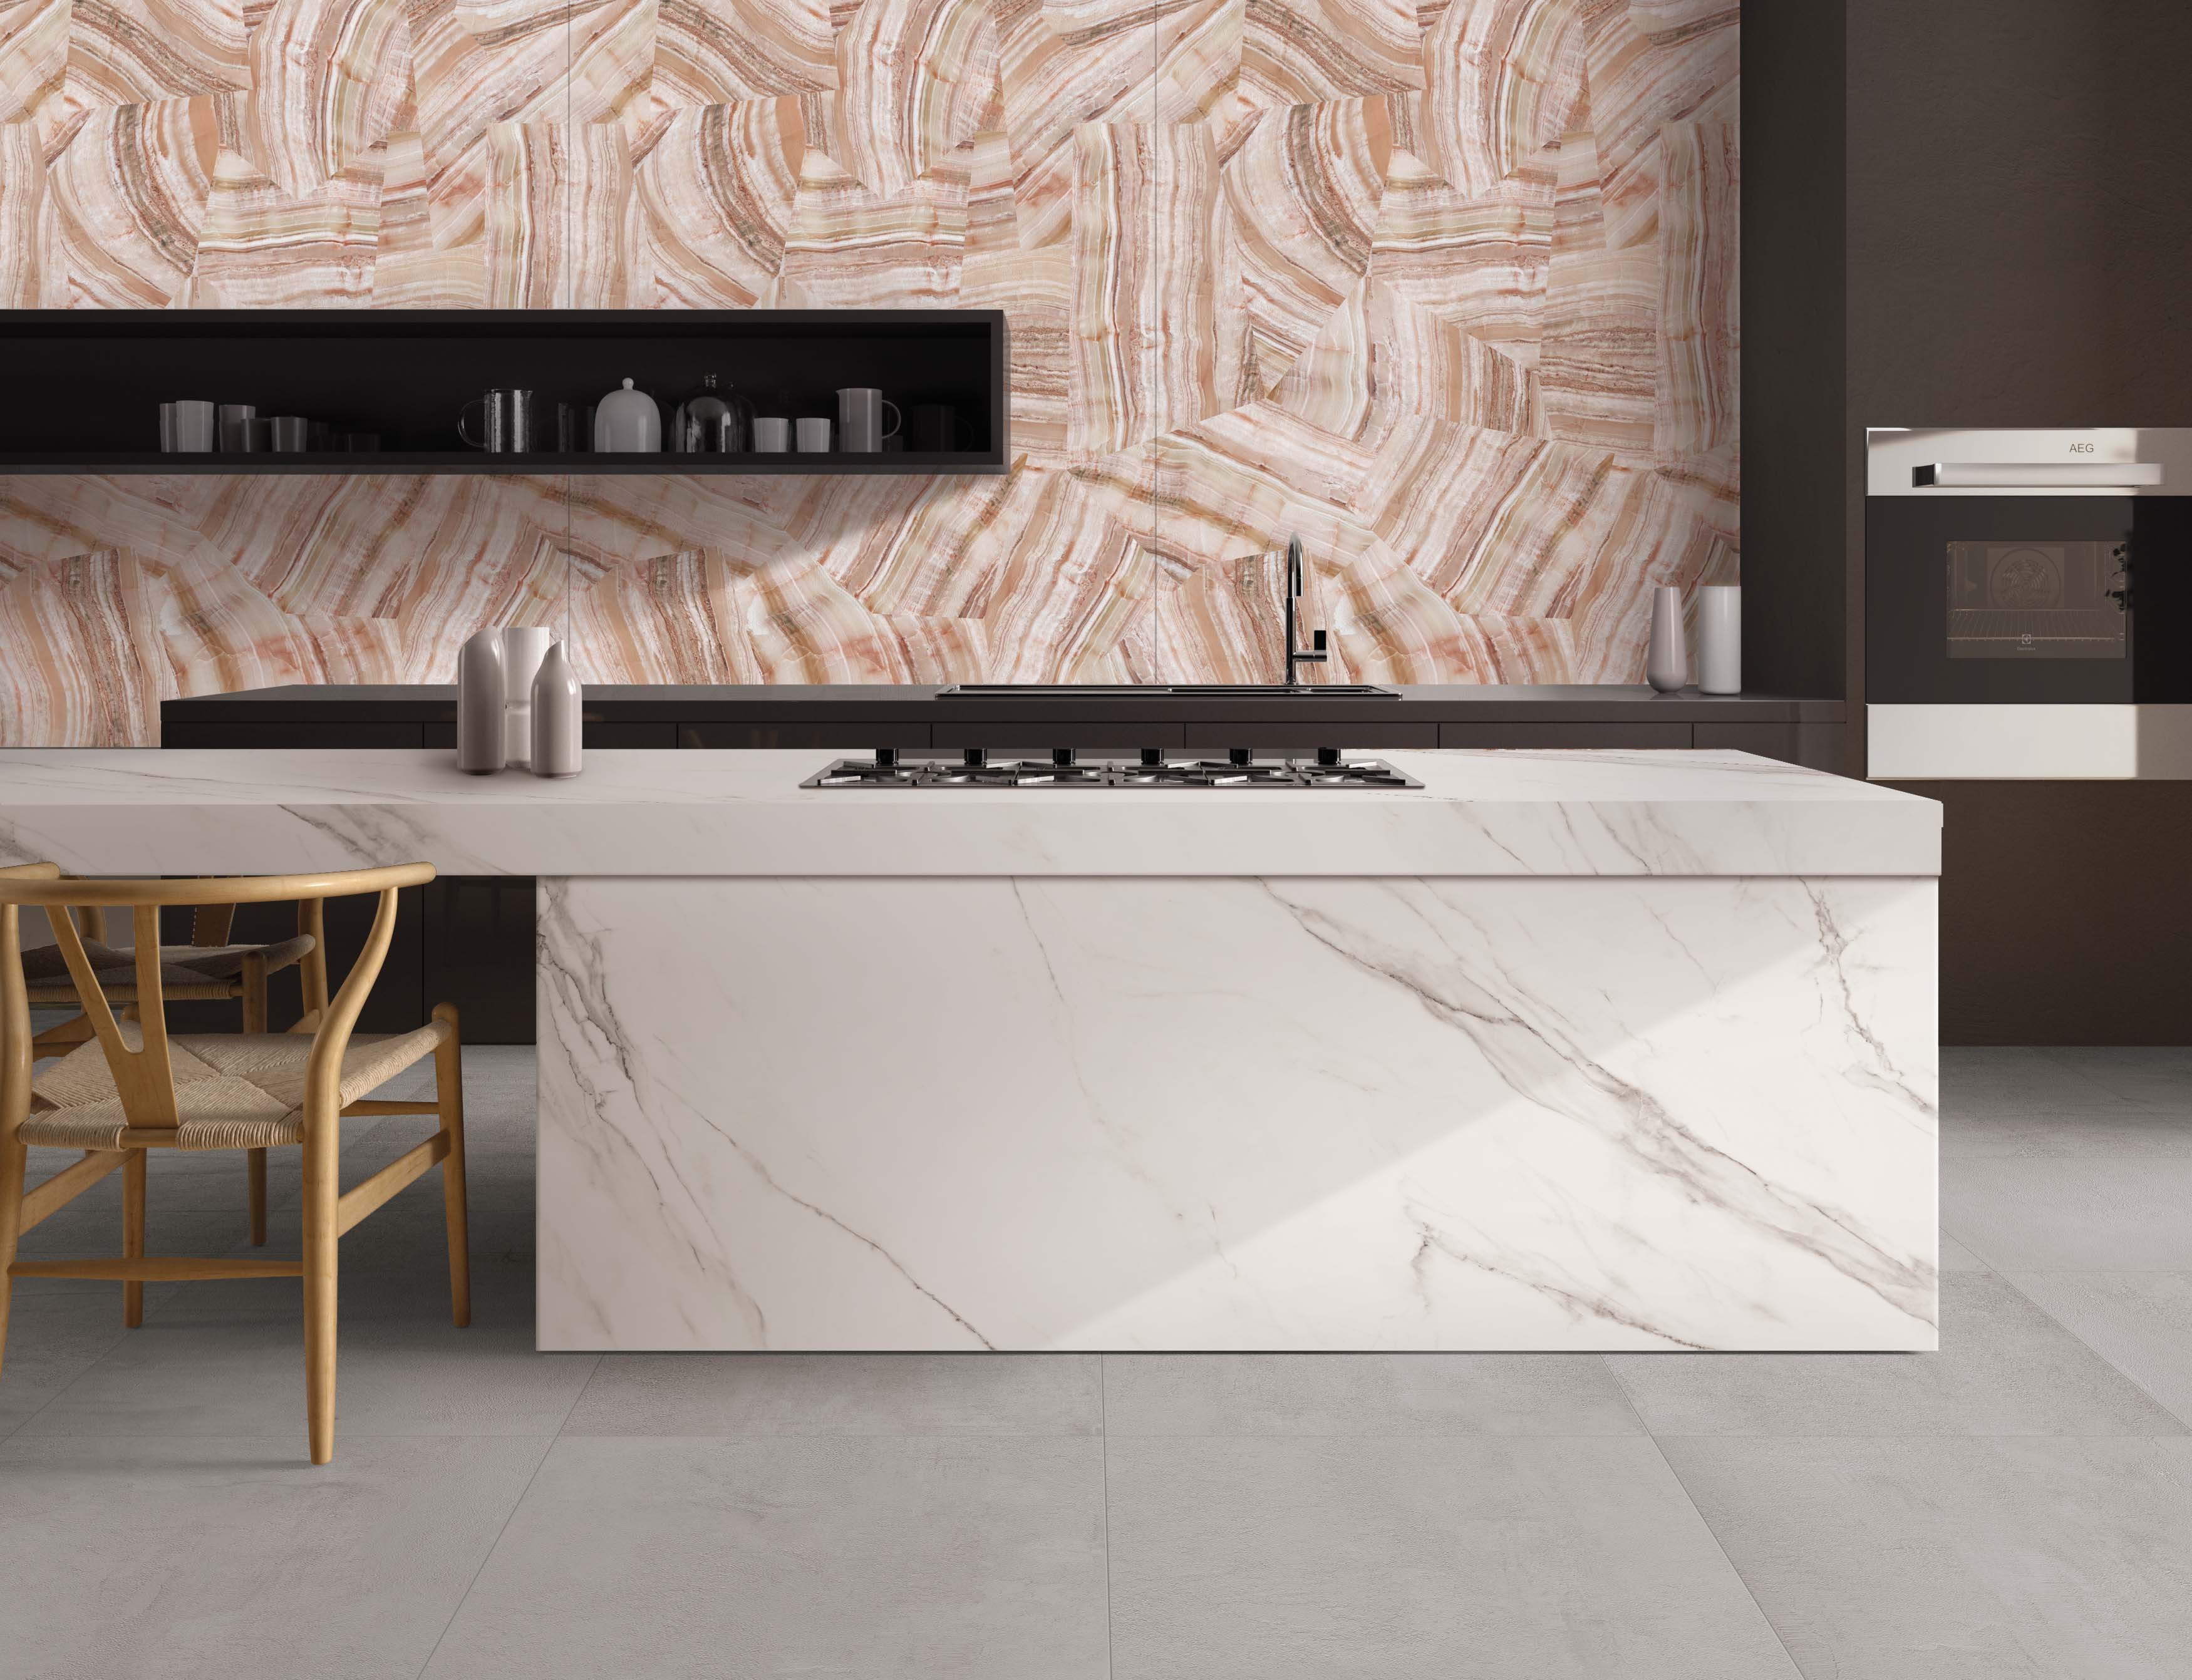 Italian tile products-Cersaie 2017-ABK Group-Onix Crossroad-Wide and Style